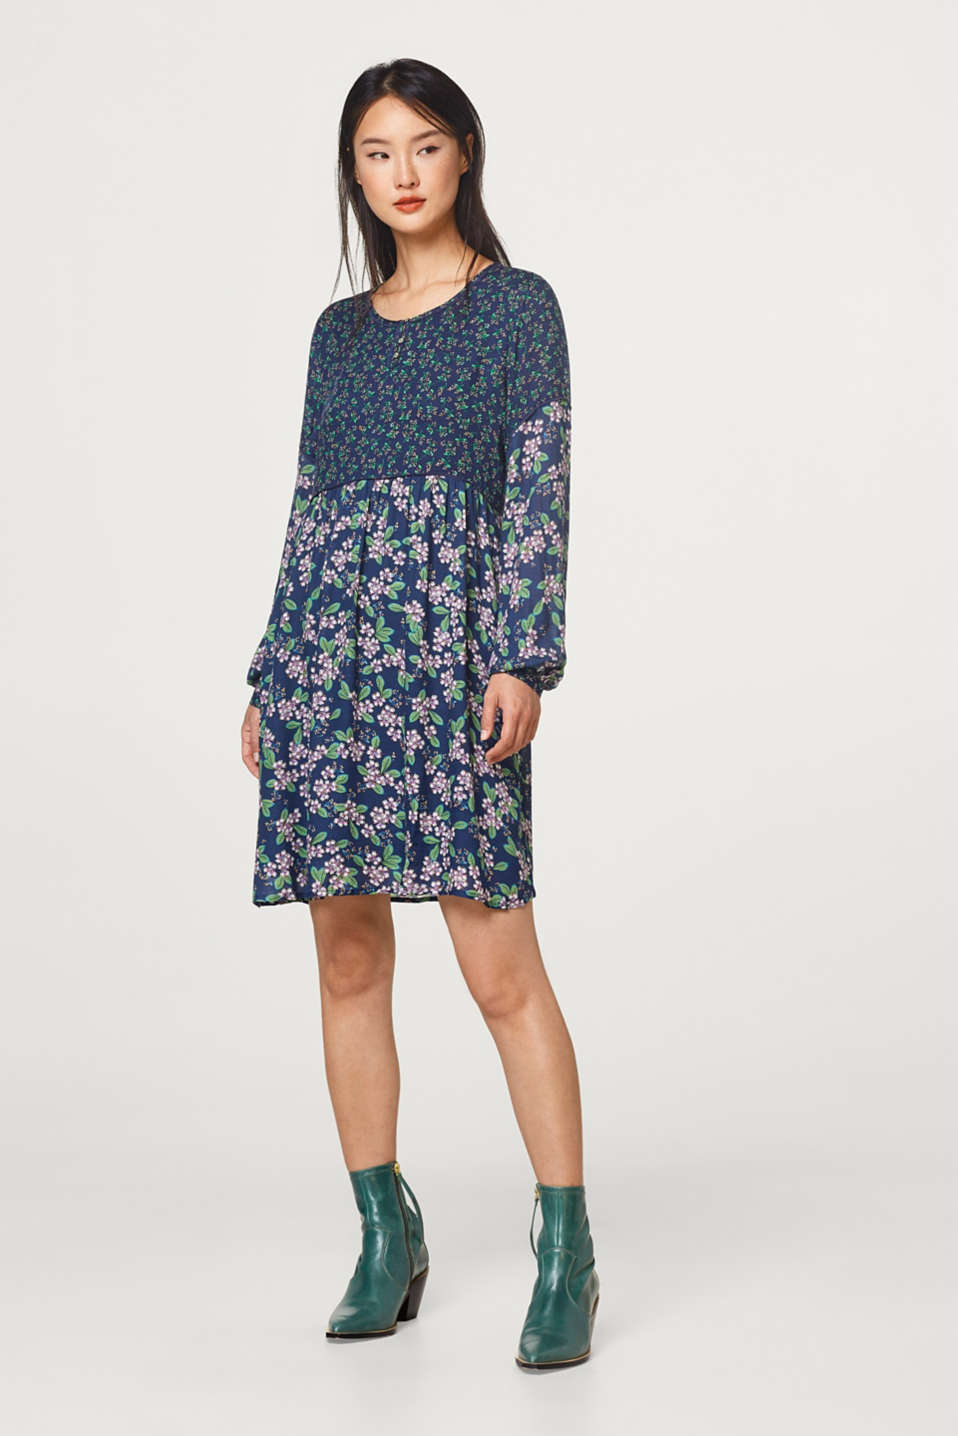 Esprit - Tent dress with a mix of floral prints